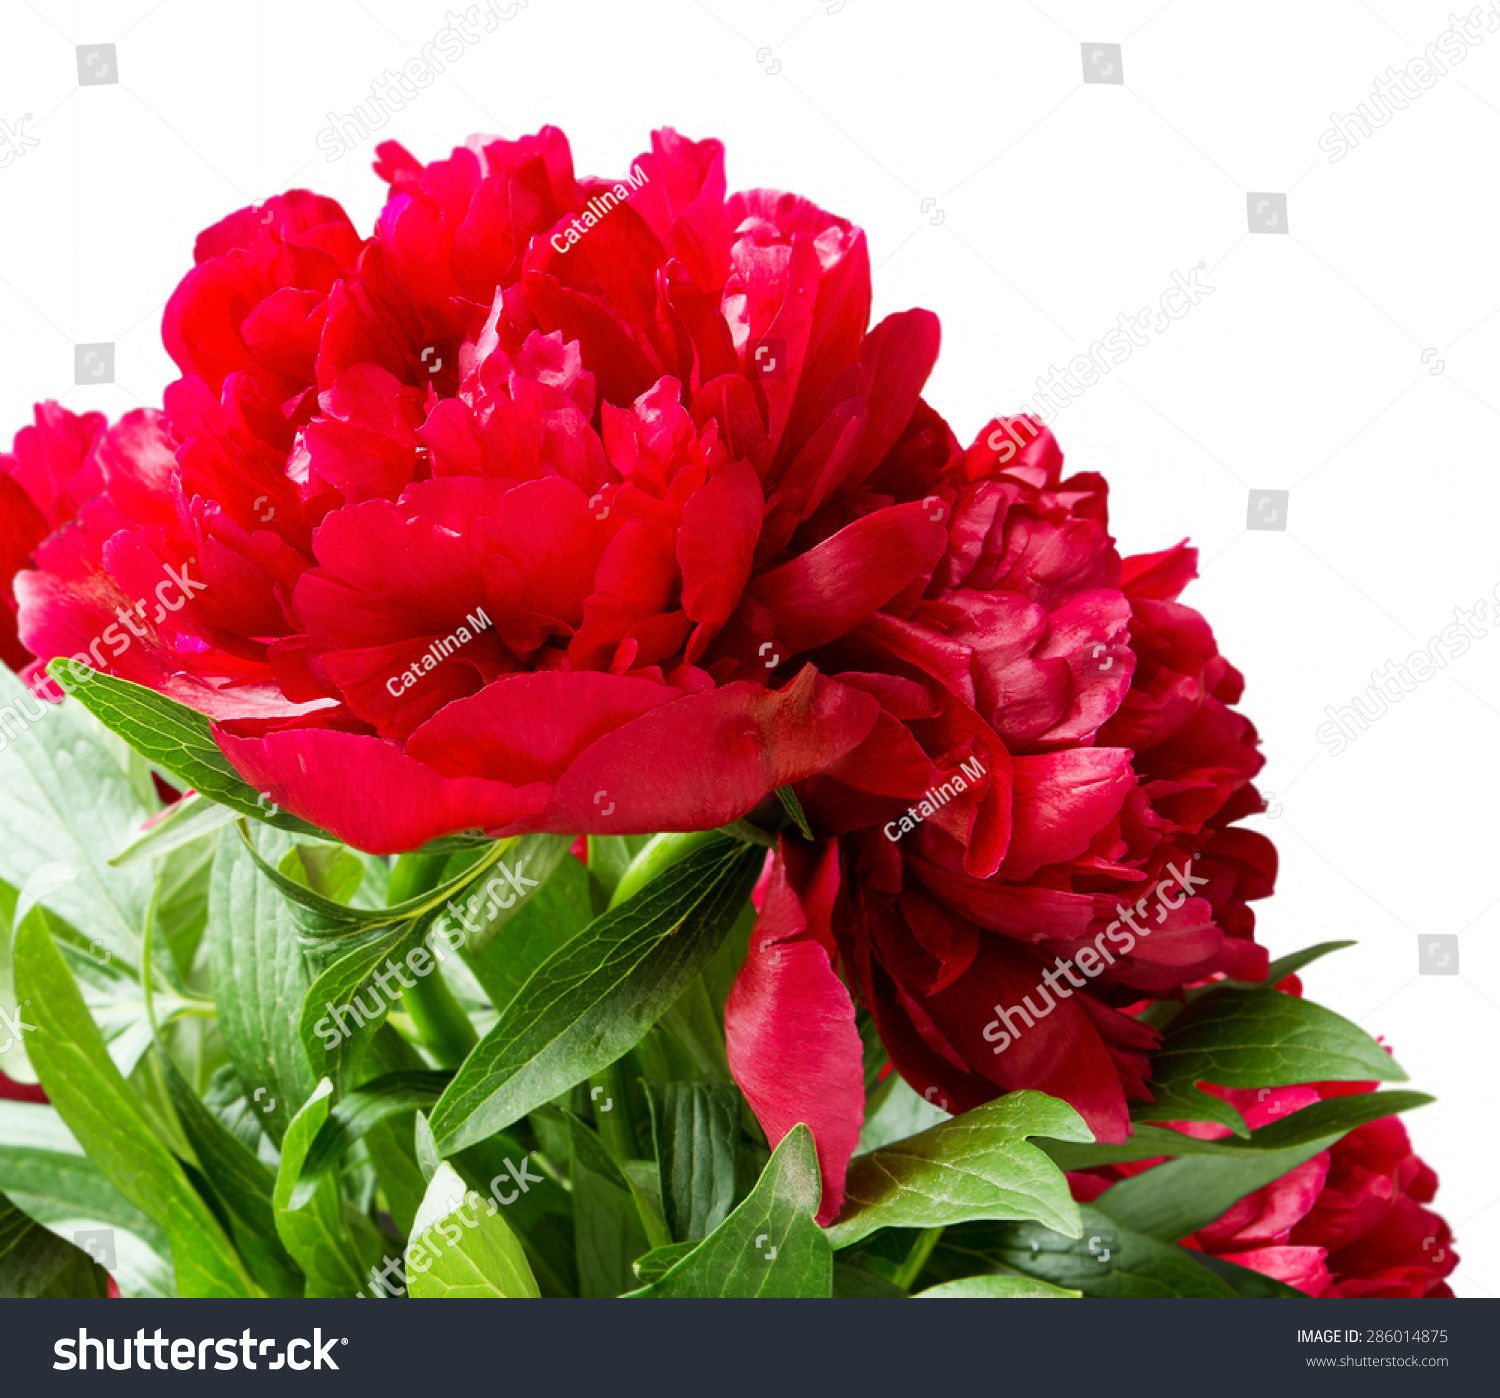 Ivy Leaved Geranium With Red Flowers On White Background Hanging